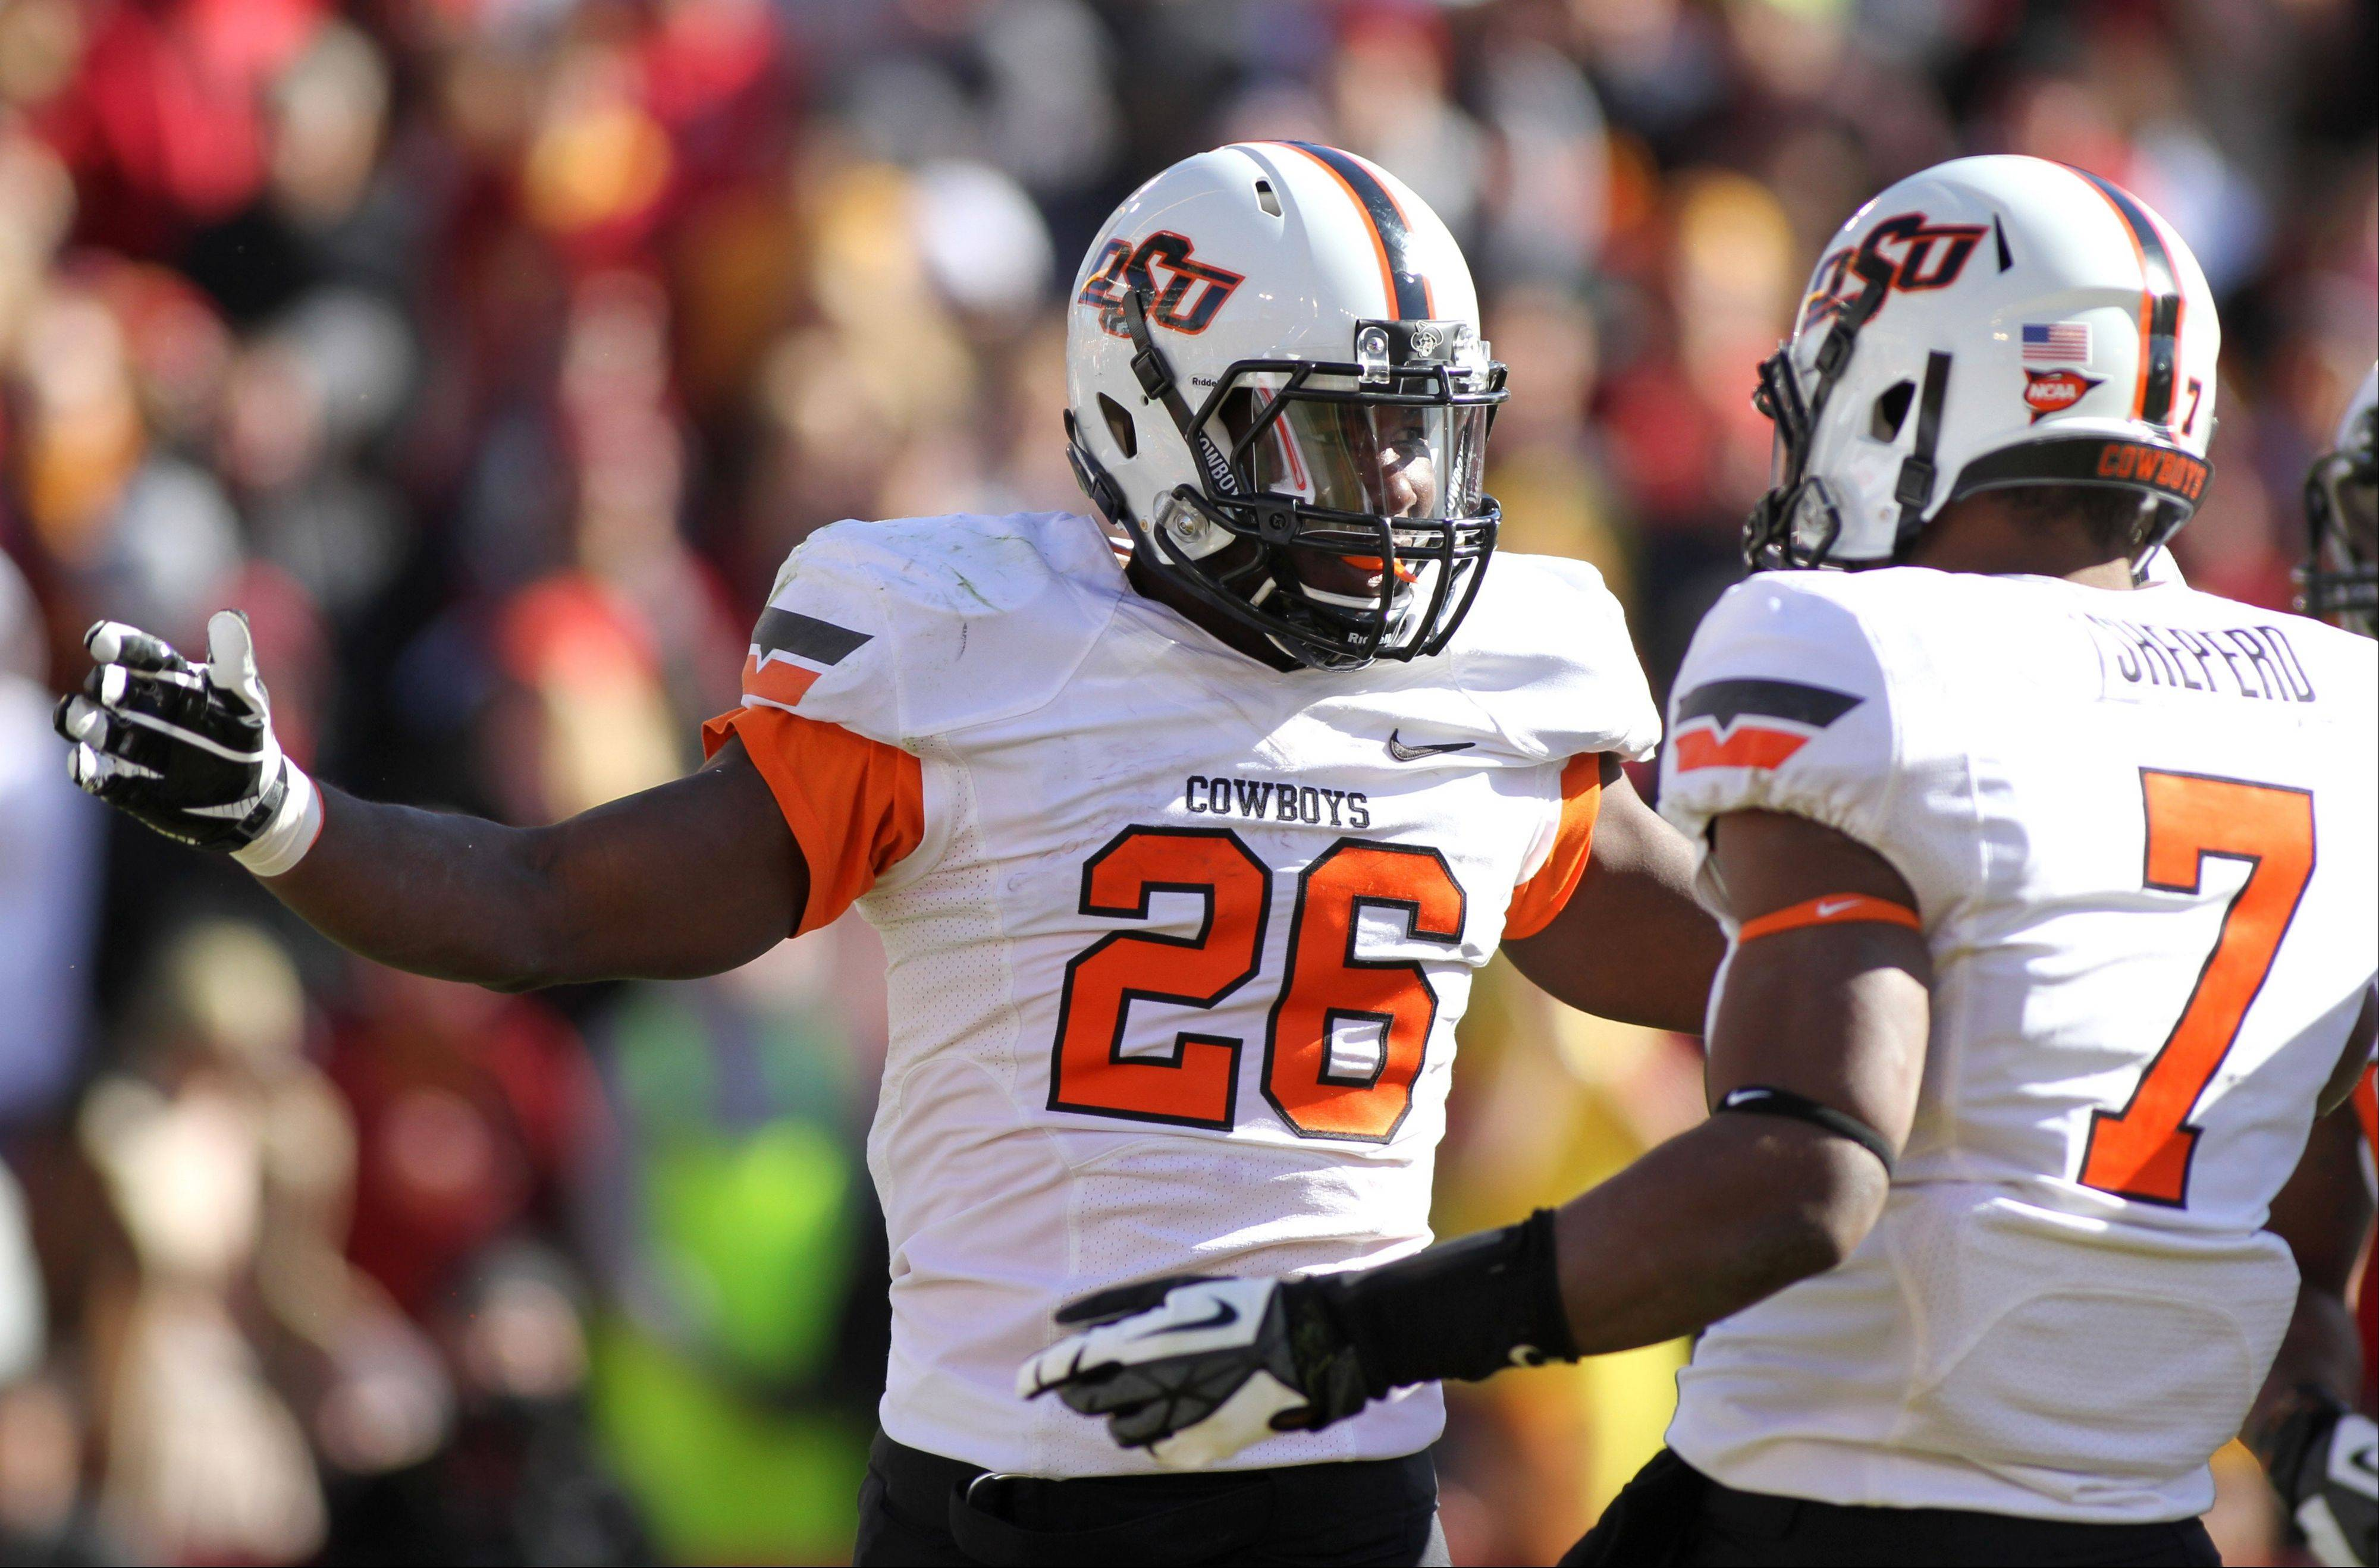 Oklahoma State running back Desmond Roland celebrates with wide receiver Brandon Sheperd after one a touchdown run in the first half. Roland rushed for 219 yards and four touchdowns in their 58-27 victory.